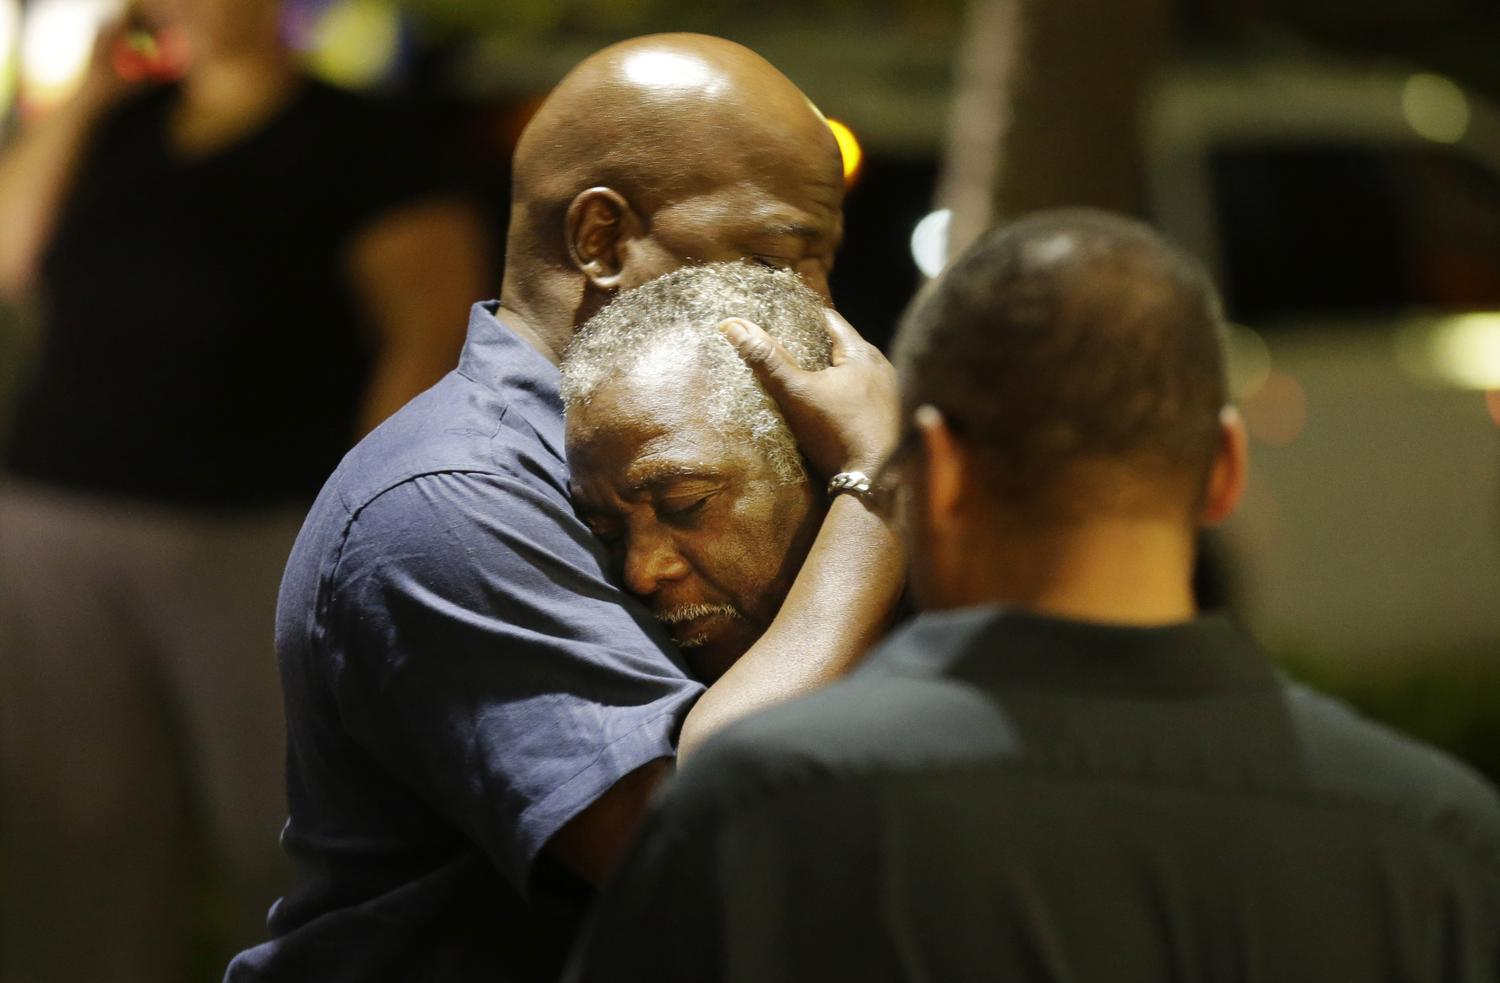 Charleston Shooting Suspect Leaves Trail Of Pain